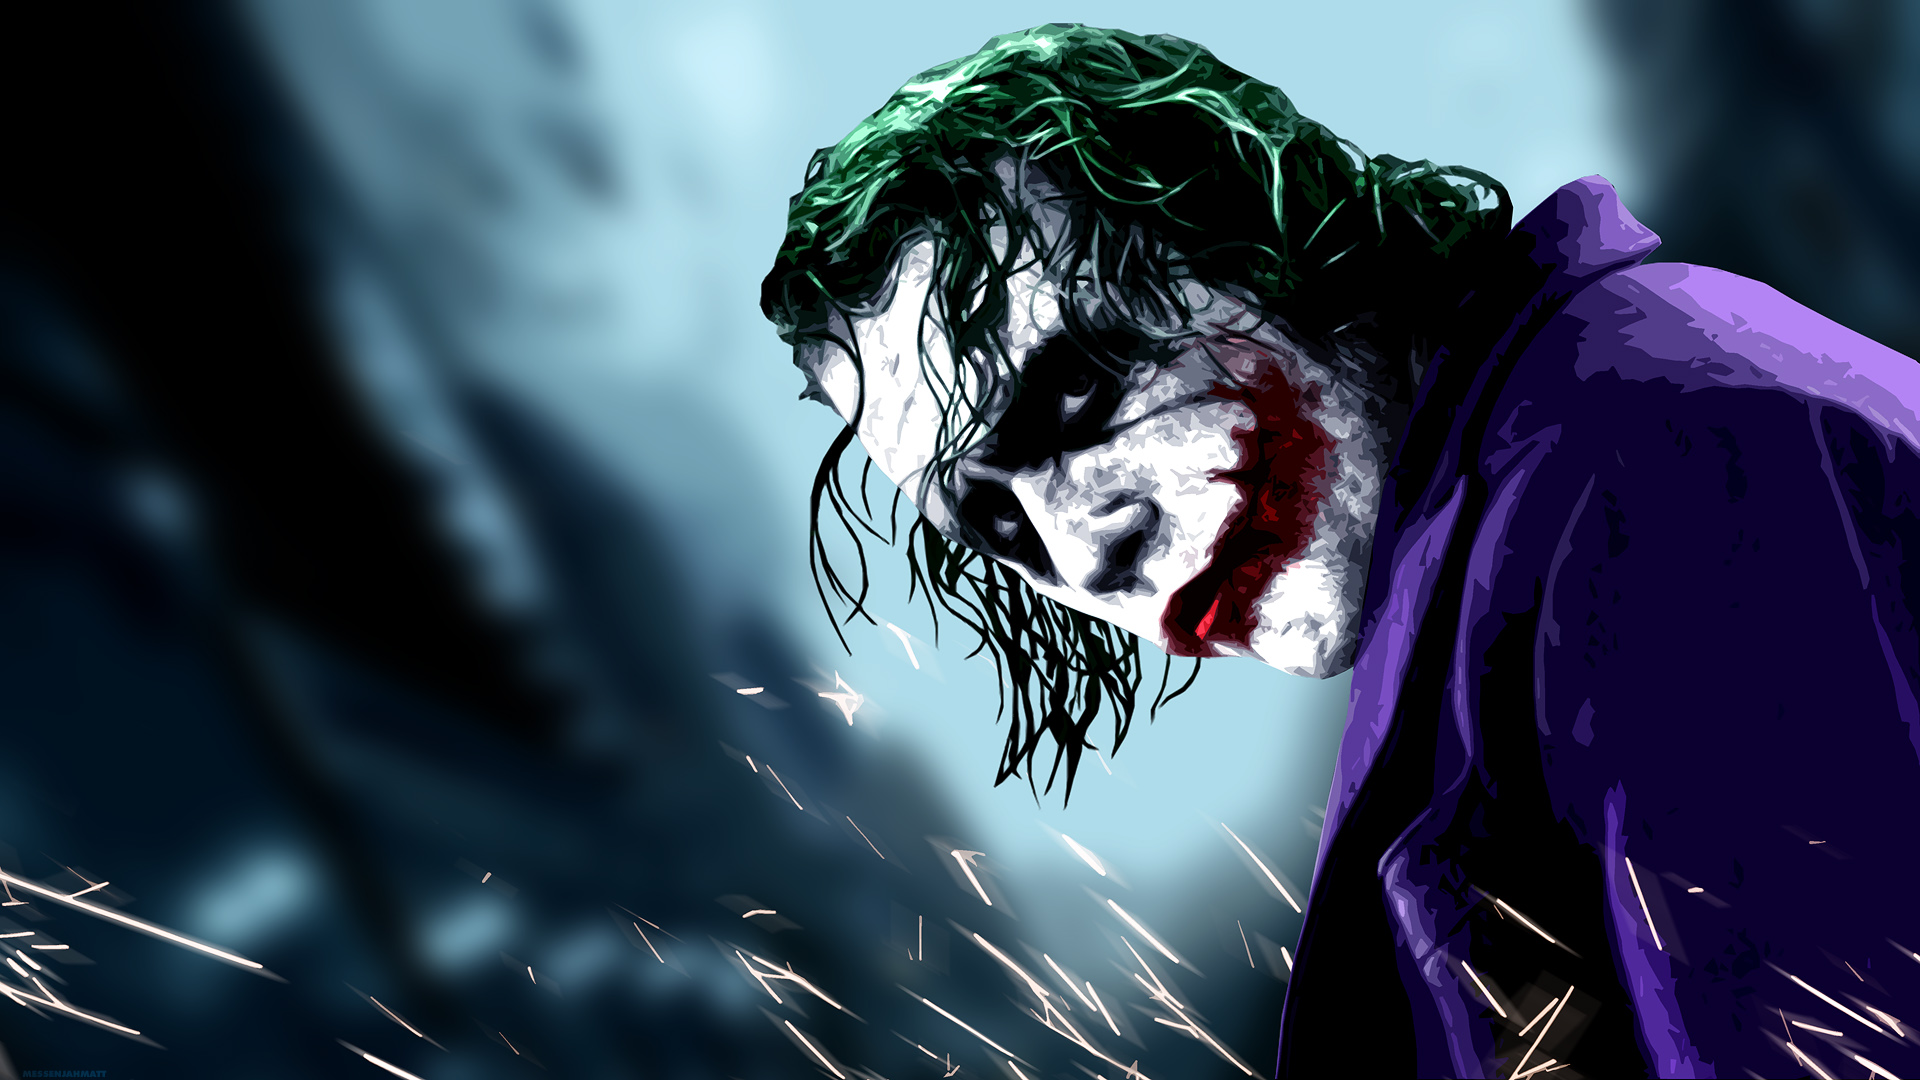 wallpapers of joker wide joker background image joker hd wallpapers 1920x1080